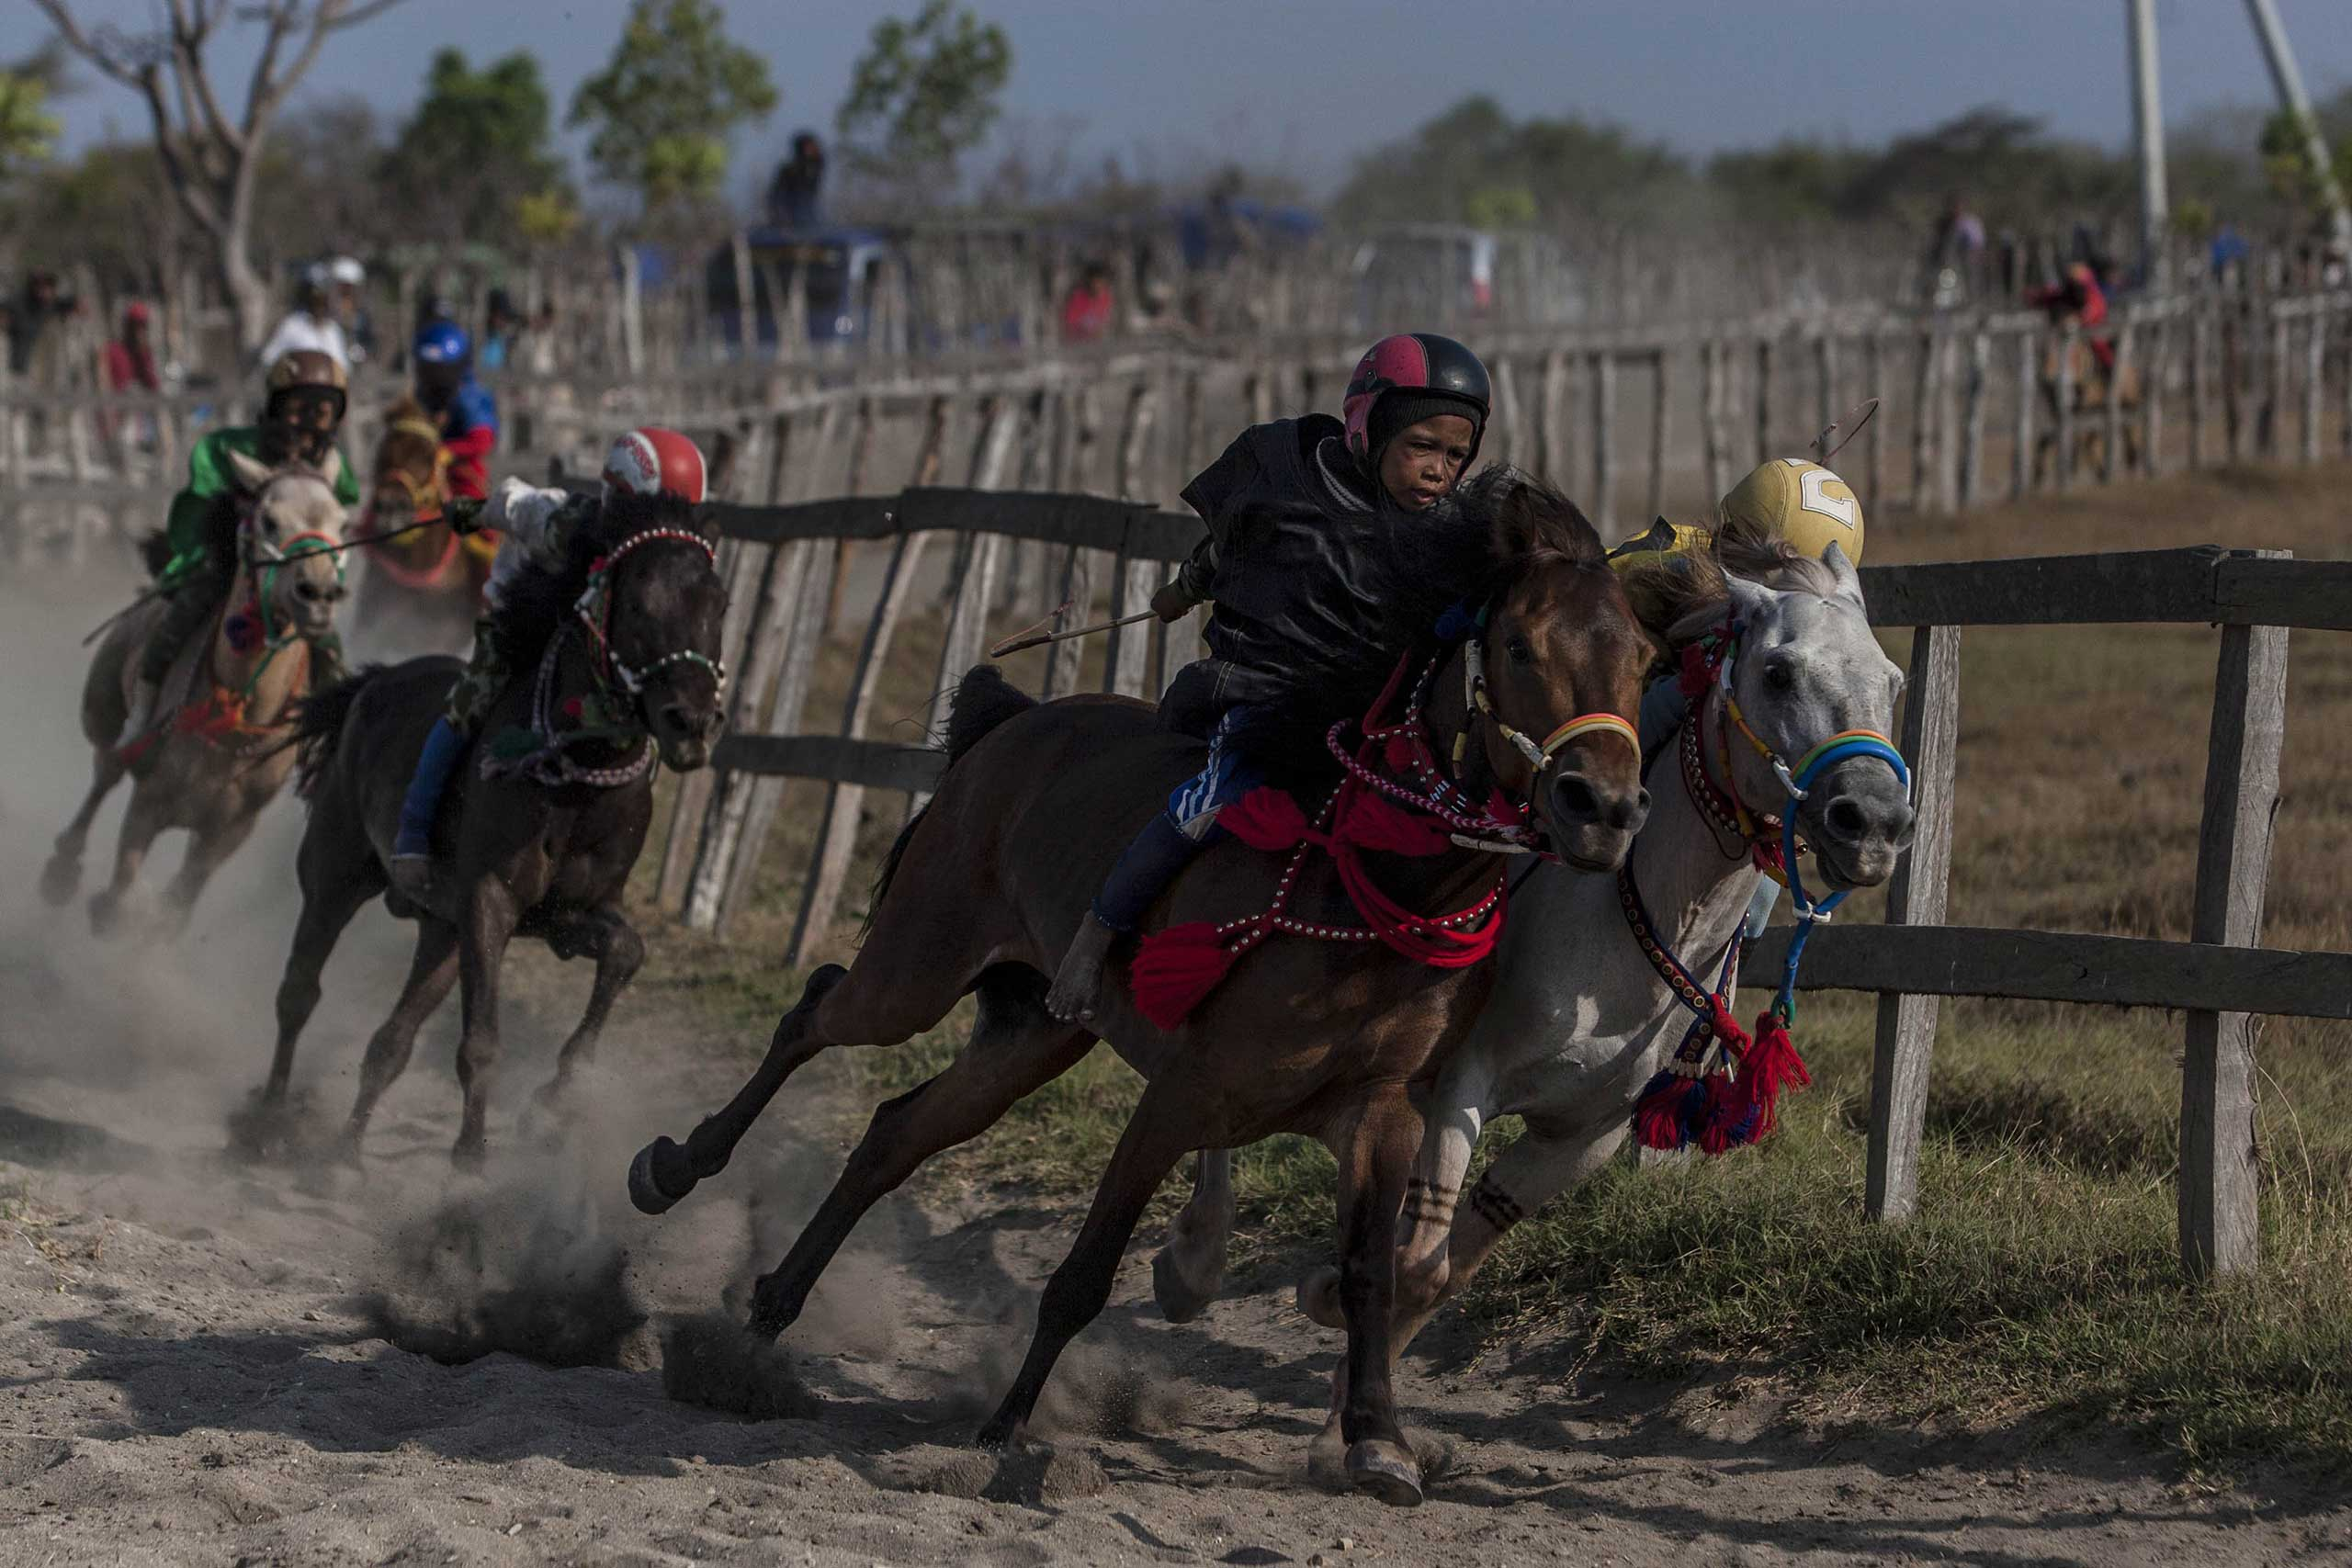 Sept. 27, 2014.  Child jockeys compete during the traditional horse races as part of Moyo festival in Sumbawa Island, West Nusa Tenggara, Indonesia. The racing tradition involves child jockeys who ride bareback.